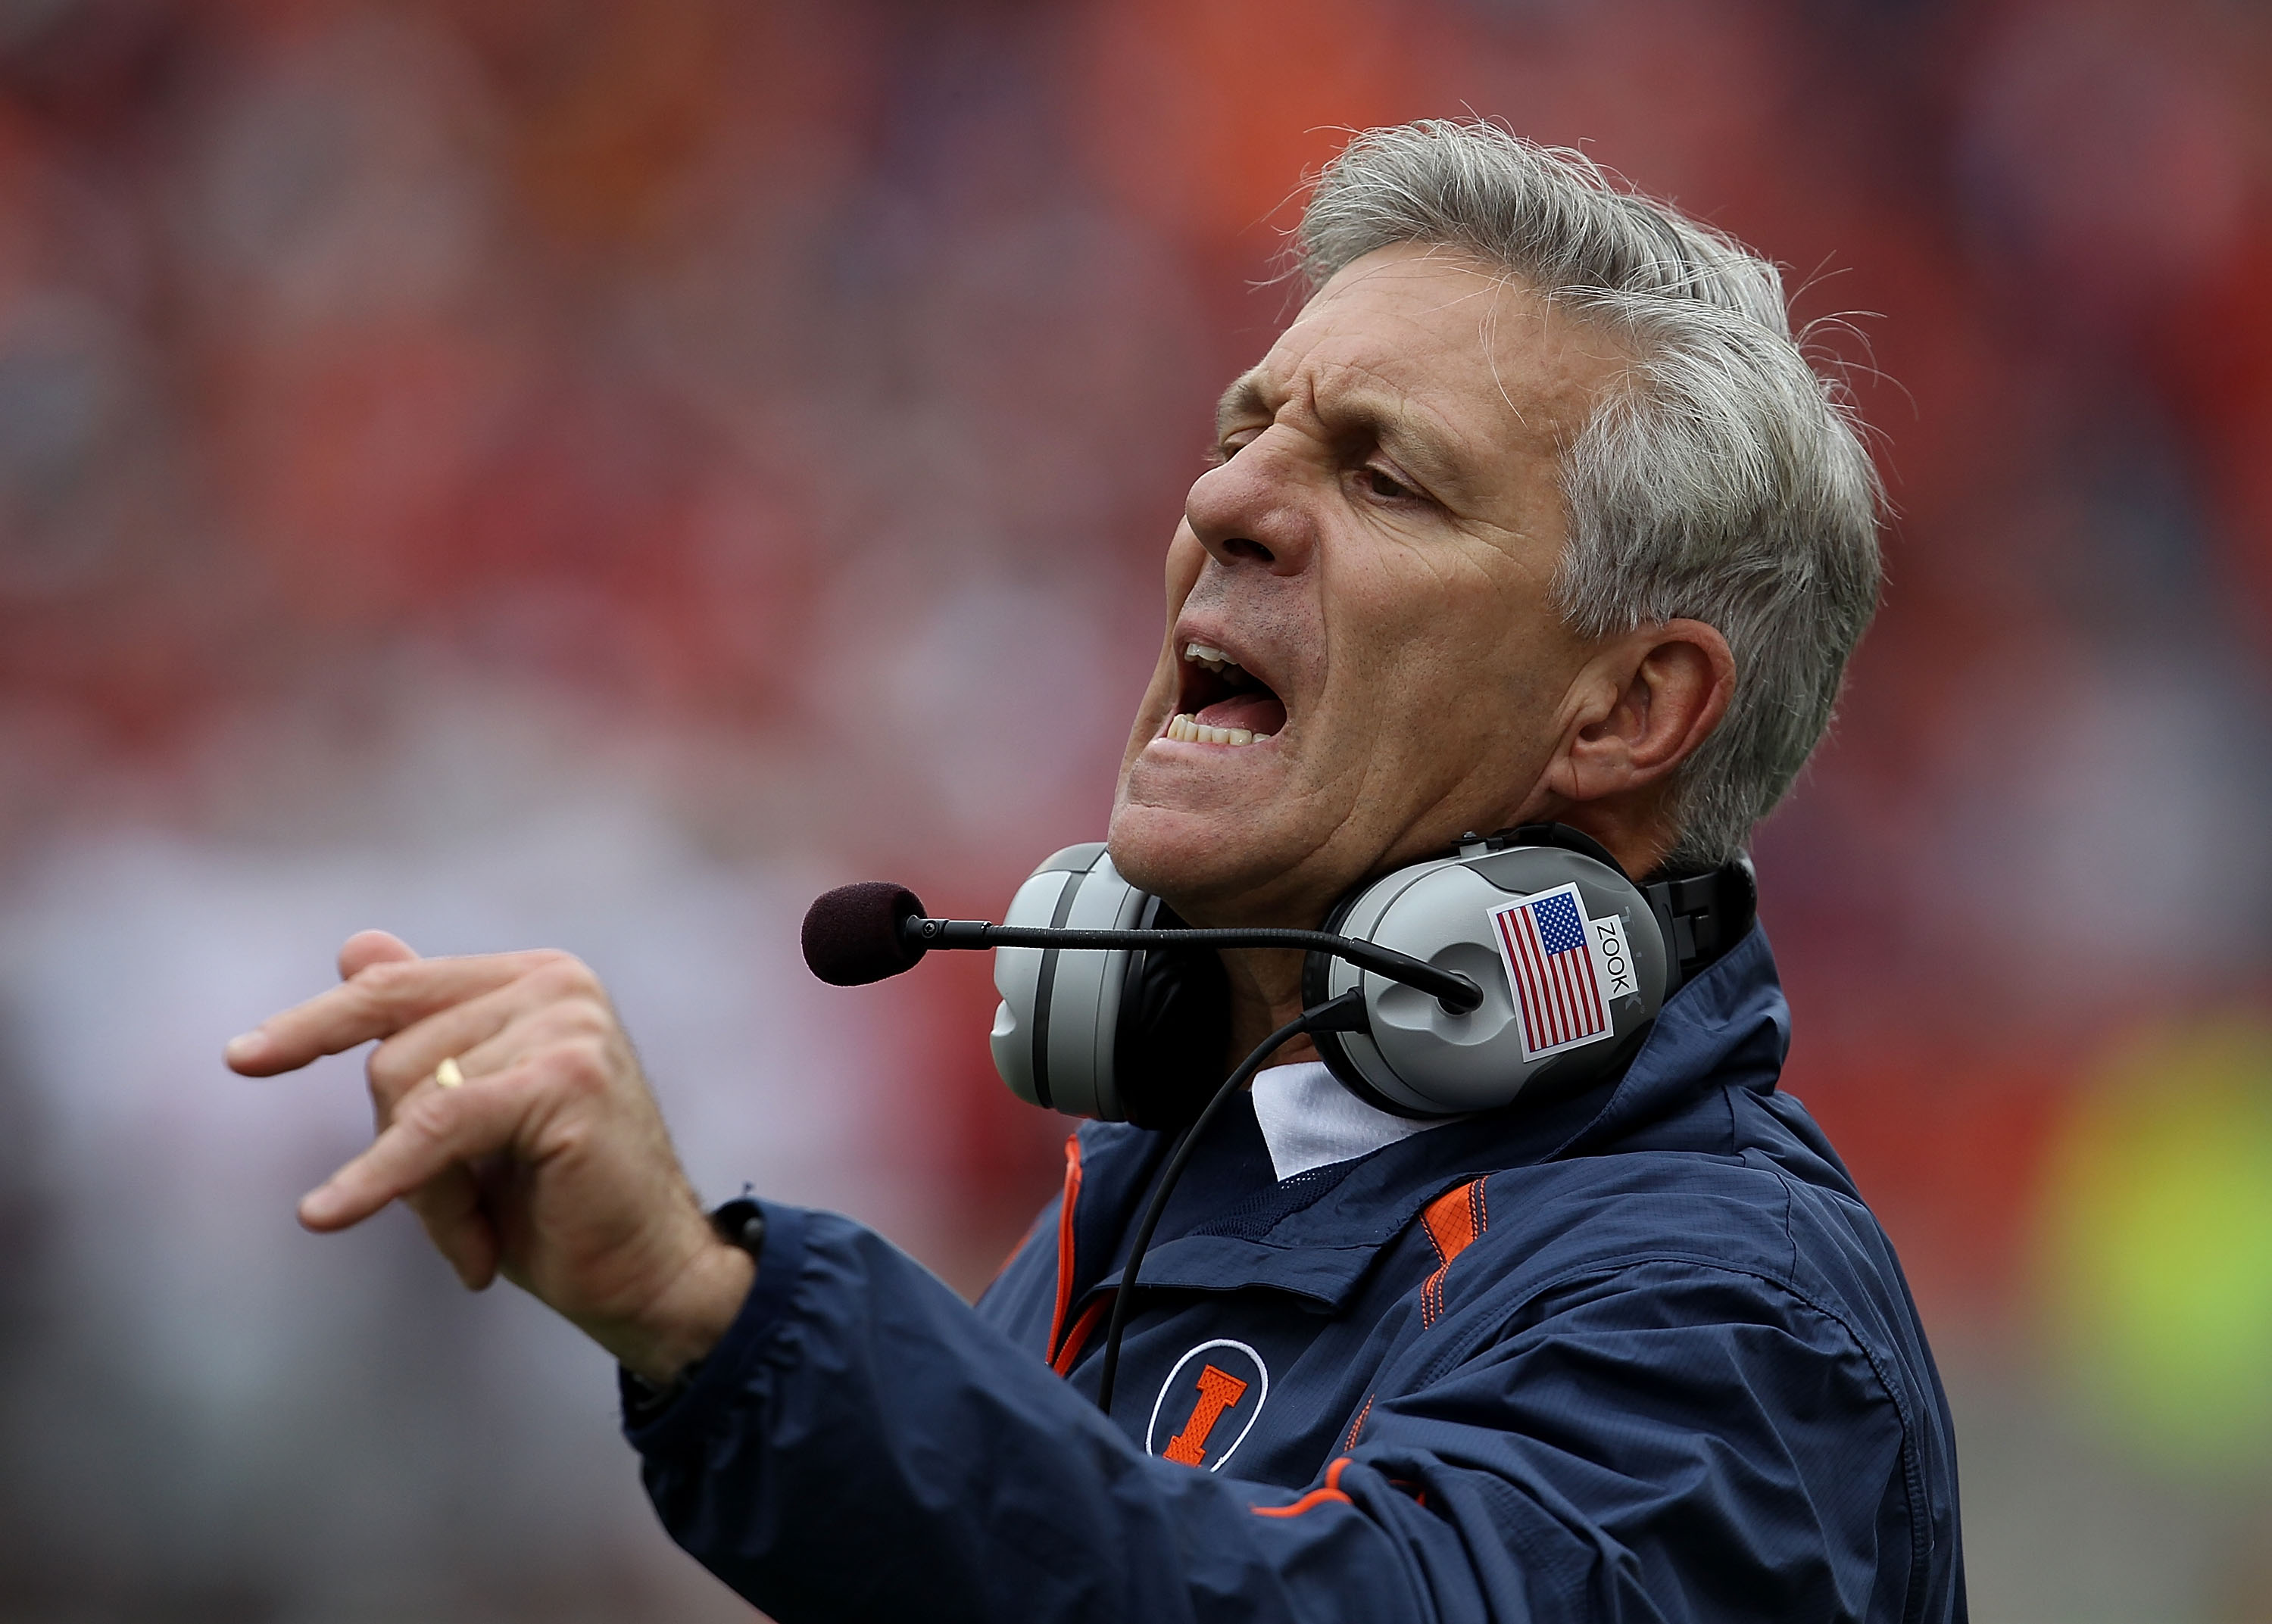 CHAMPAIGN, IL - OCTOBER 02: Head coach Ron Zook of the Illinois Fighting Illini gives instructions to his team against the Ohio State Buckeyes at Memorial Stadium on October 2, 2010 in Champaign, Illinois. Ohio State defeated Illinois 24-13. (Photo by Jon